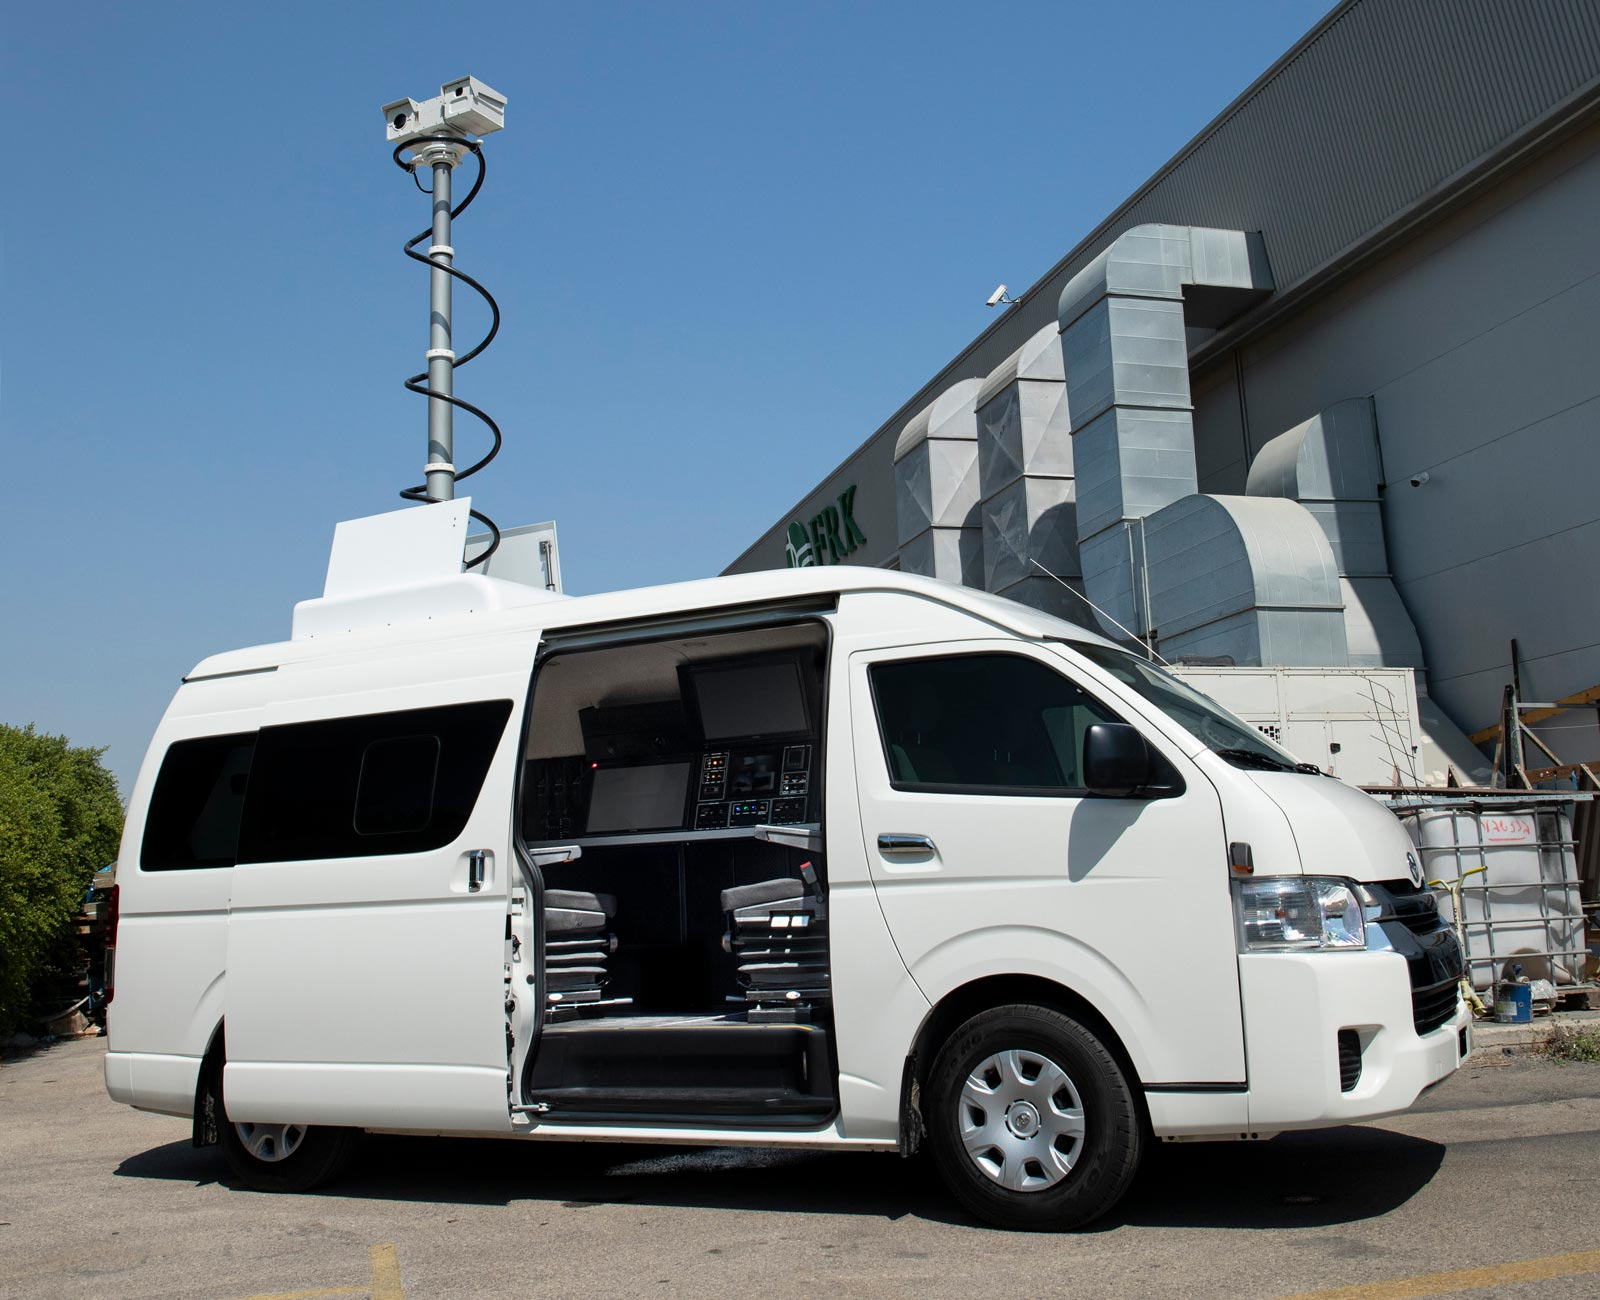 Multipurpose Surveillance Vehicles